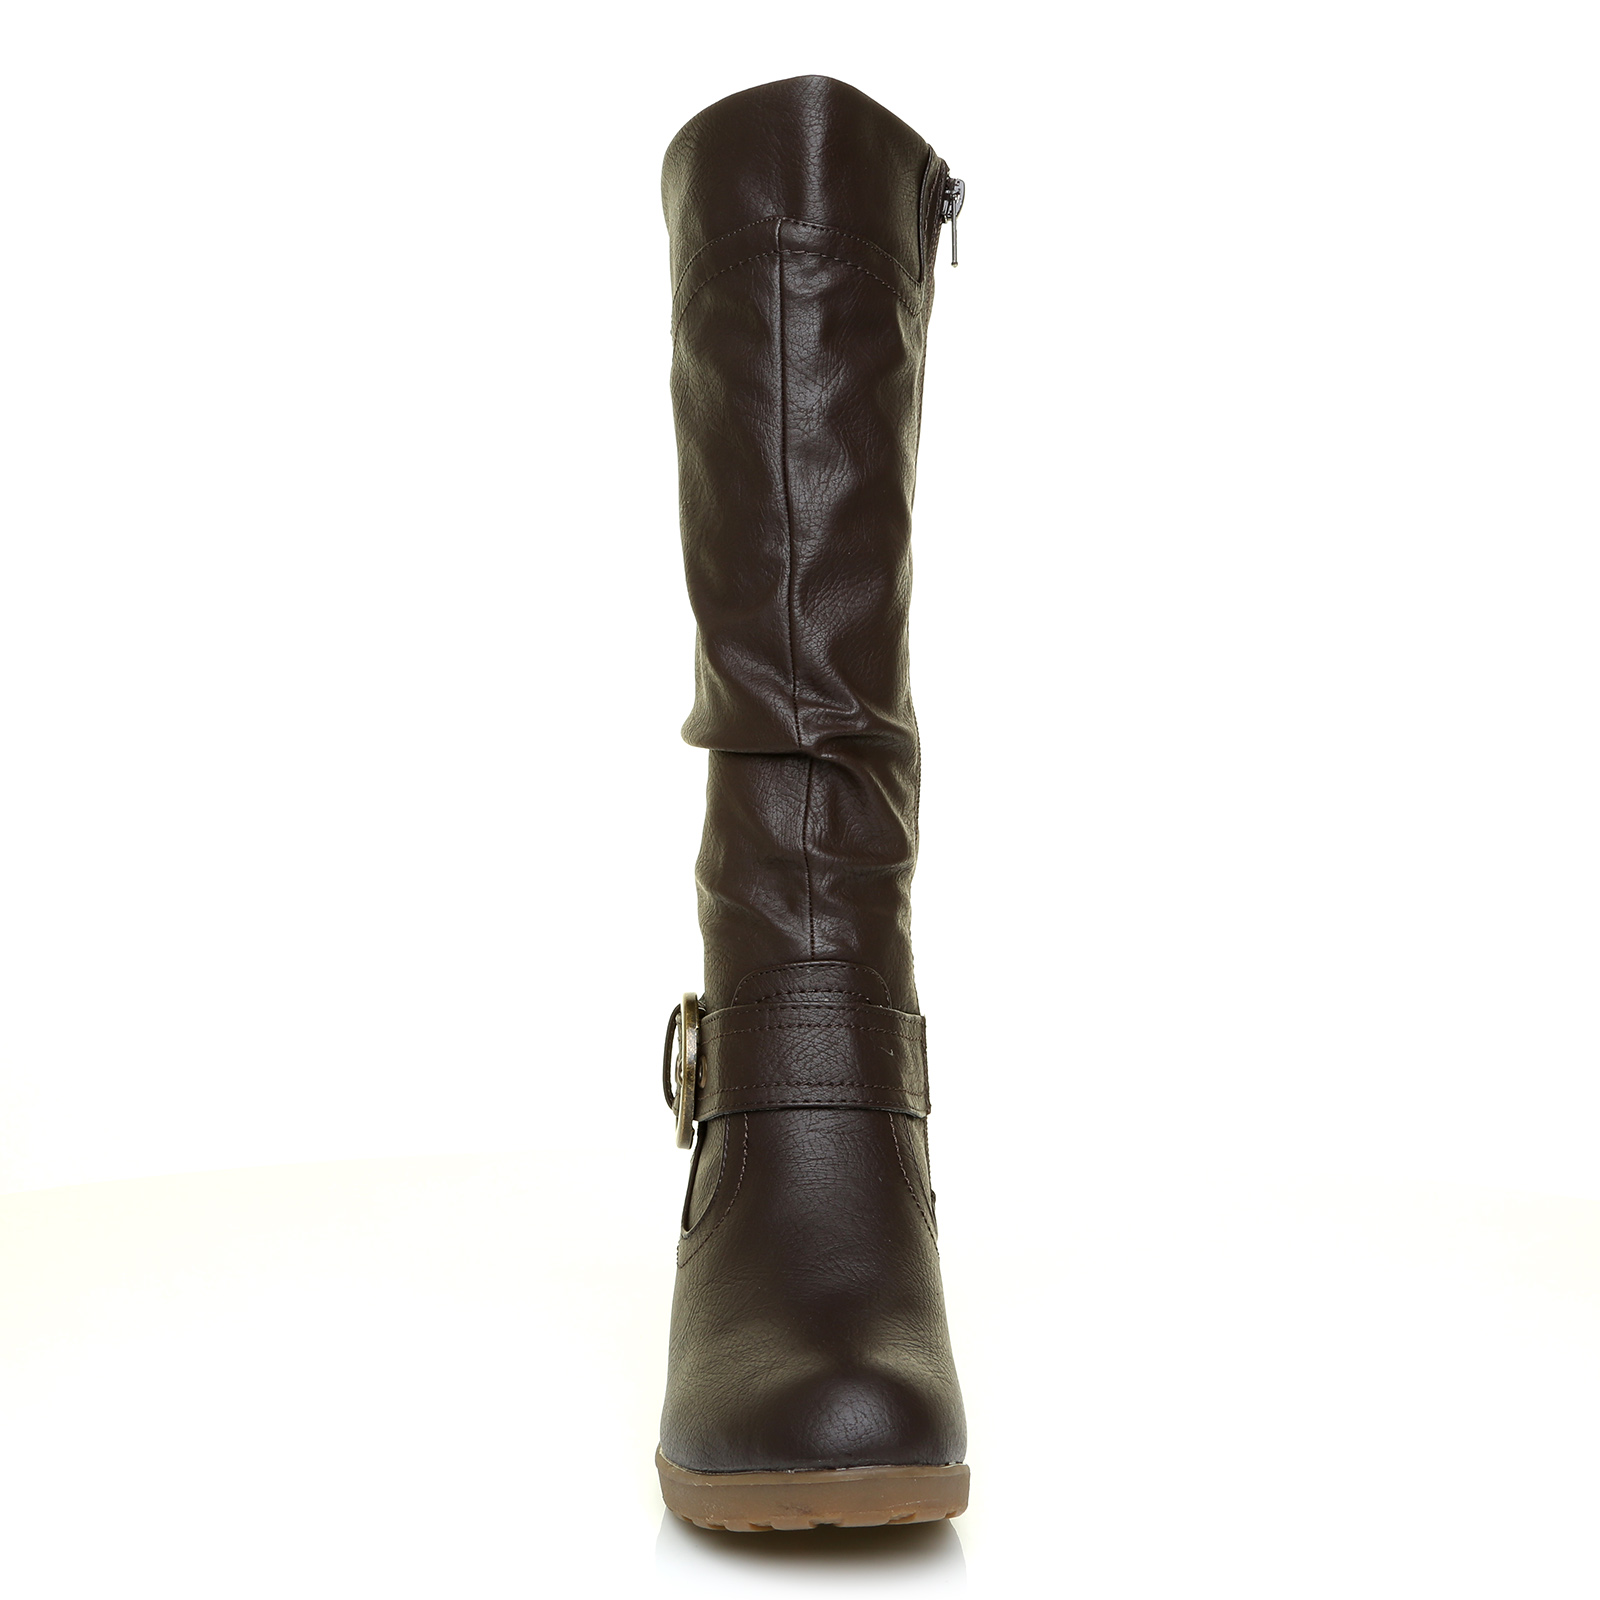 Fantastic  All Mustang View All Mid Calf Boots View All Mustang Mid Calf Boots